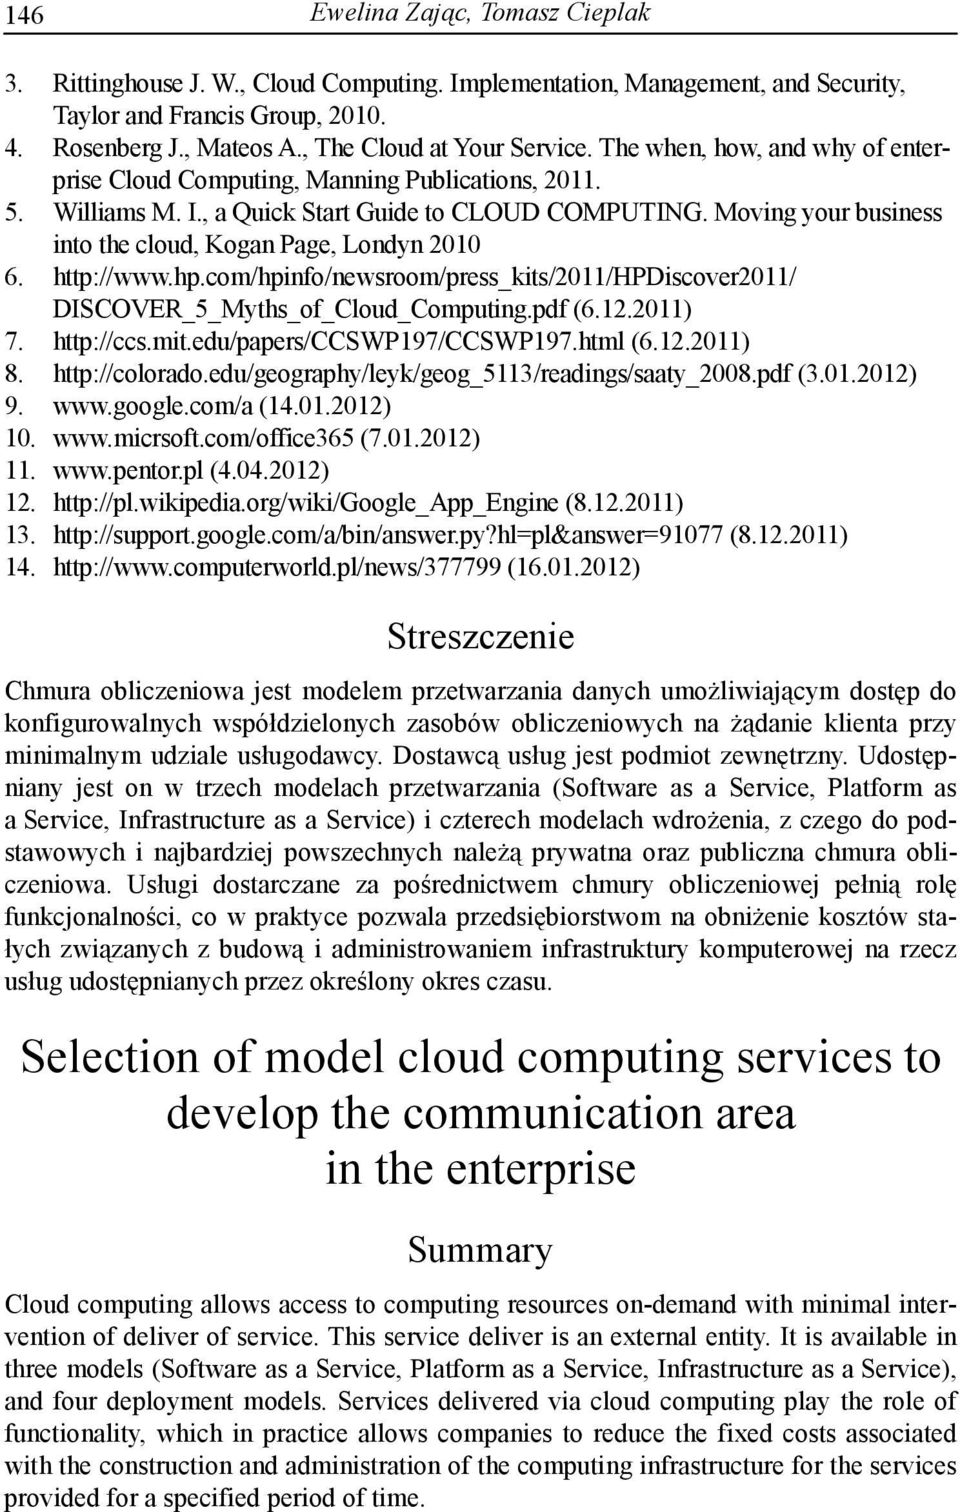 Moving your business into the cloud, Kogan Page, Londyn 2010 6. http://www.hp.com/hpinfo/newsroom/press_kits/2011/hpdiscover2011/ DISCOVER_5_Myths_of_Cloud_Computing.pdf (6.12.2011) 7. http://ccs.mit.